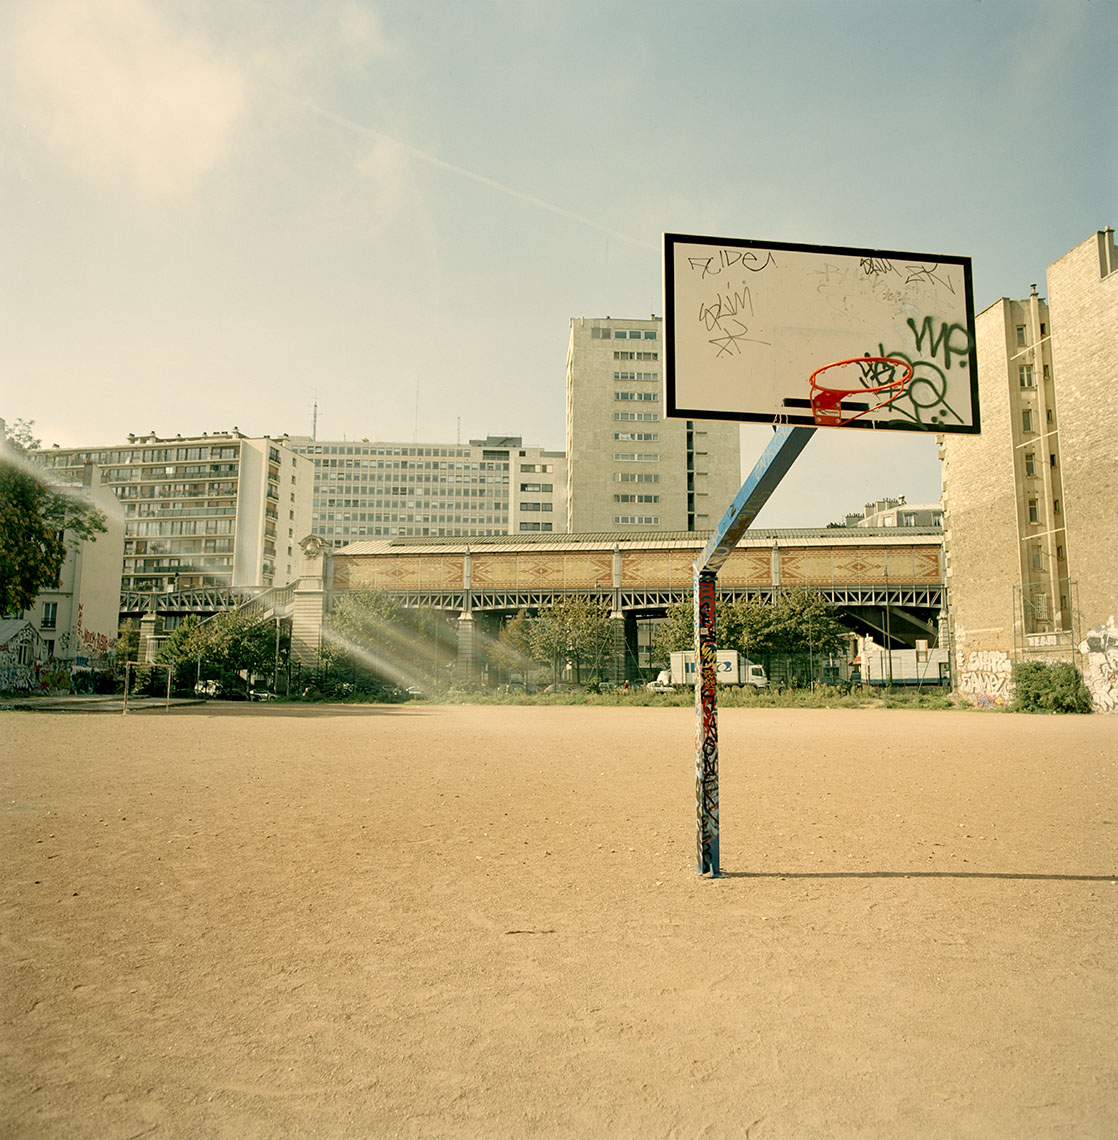 Basket ball court in Paris